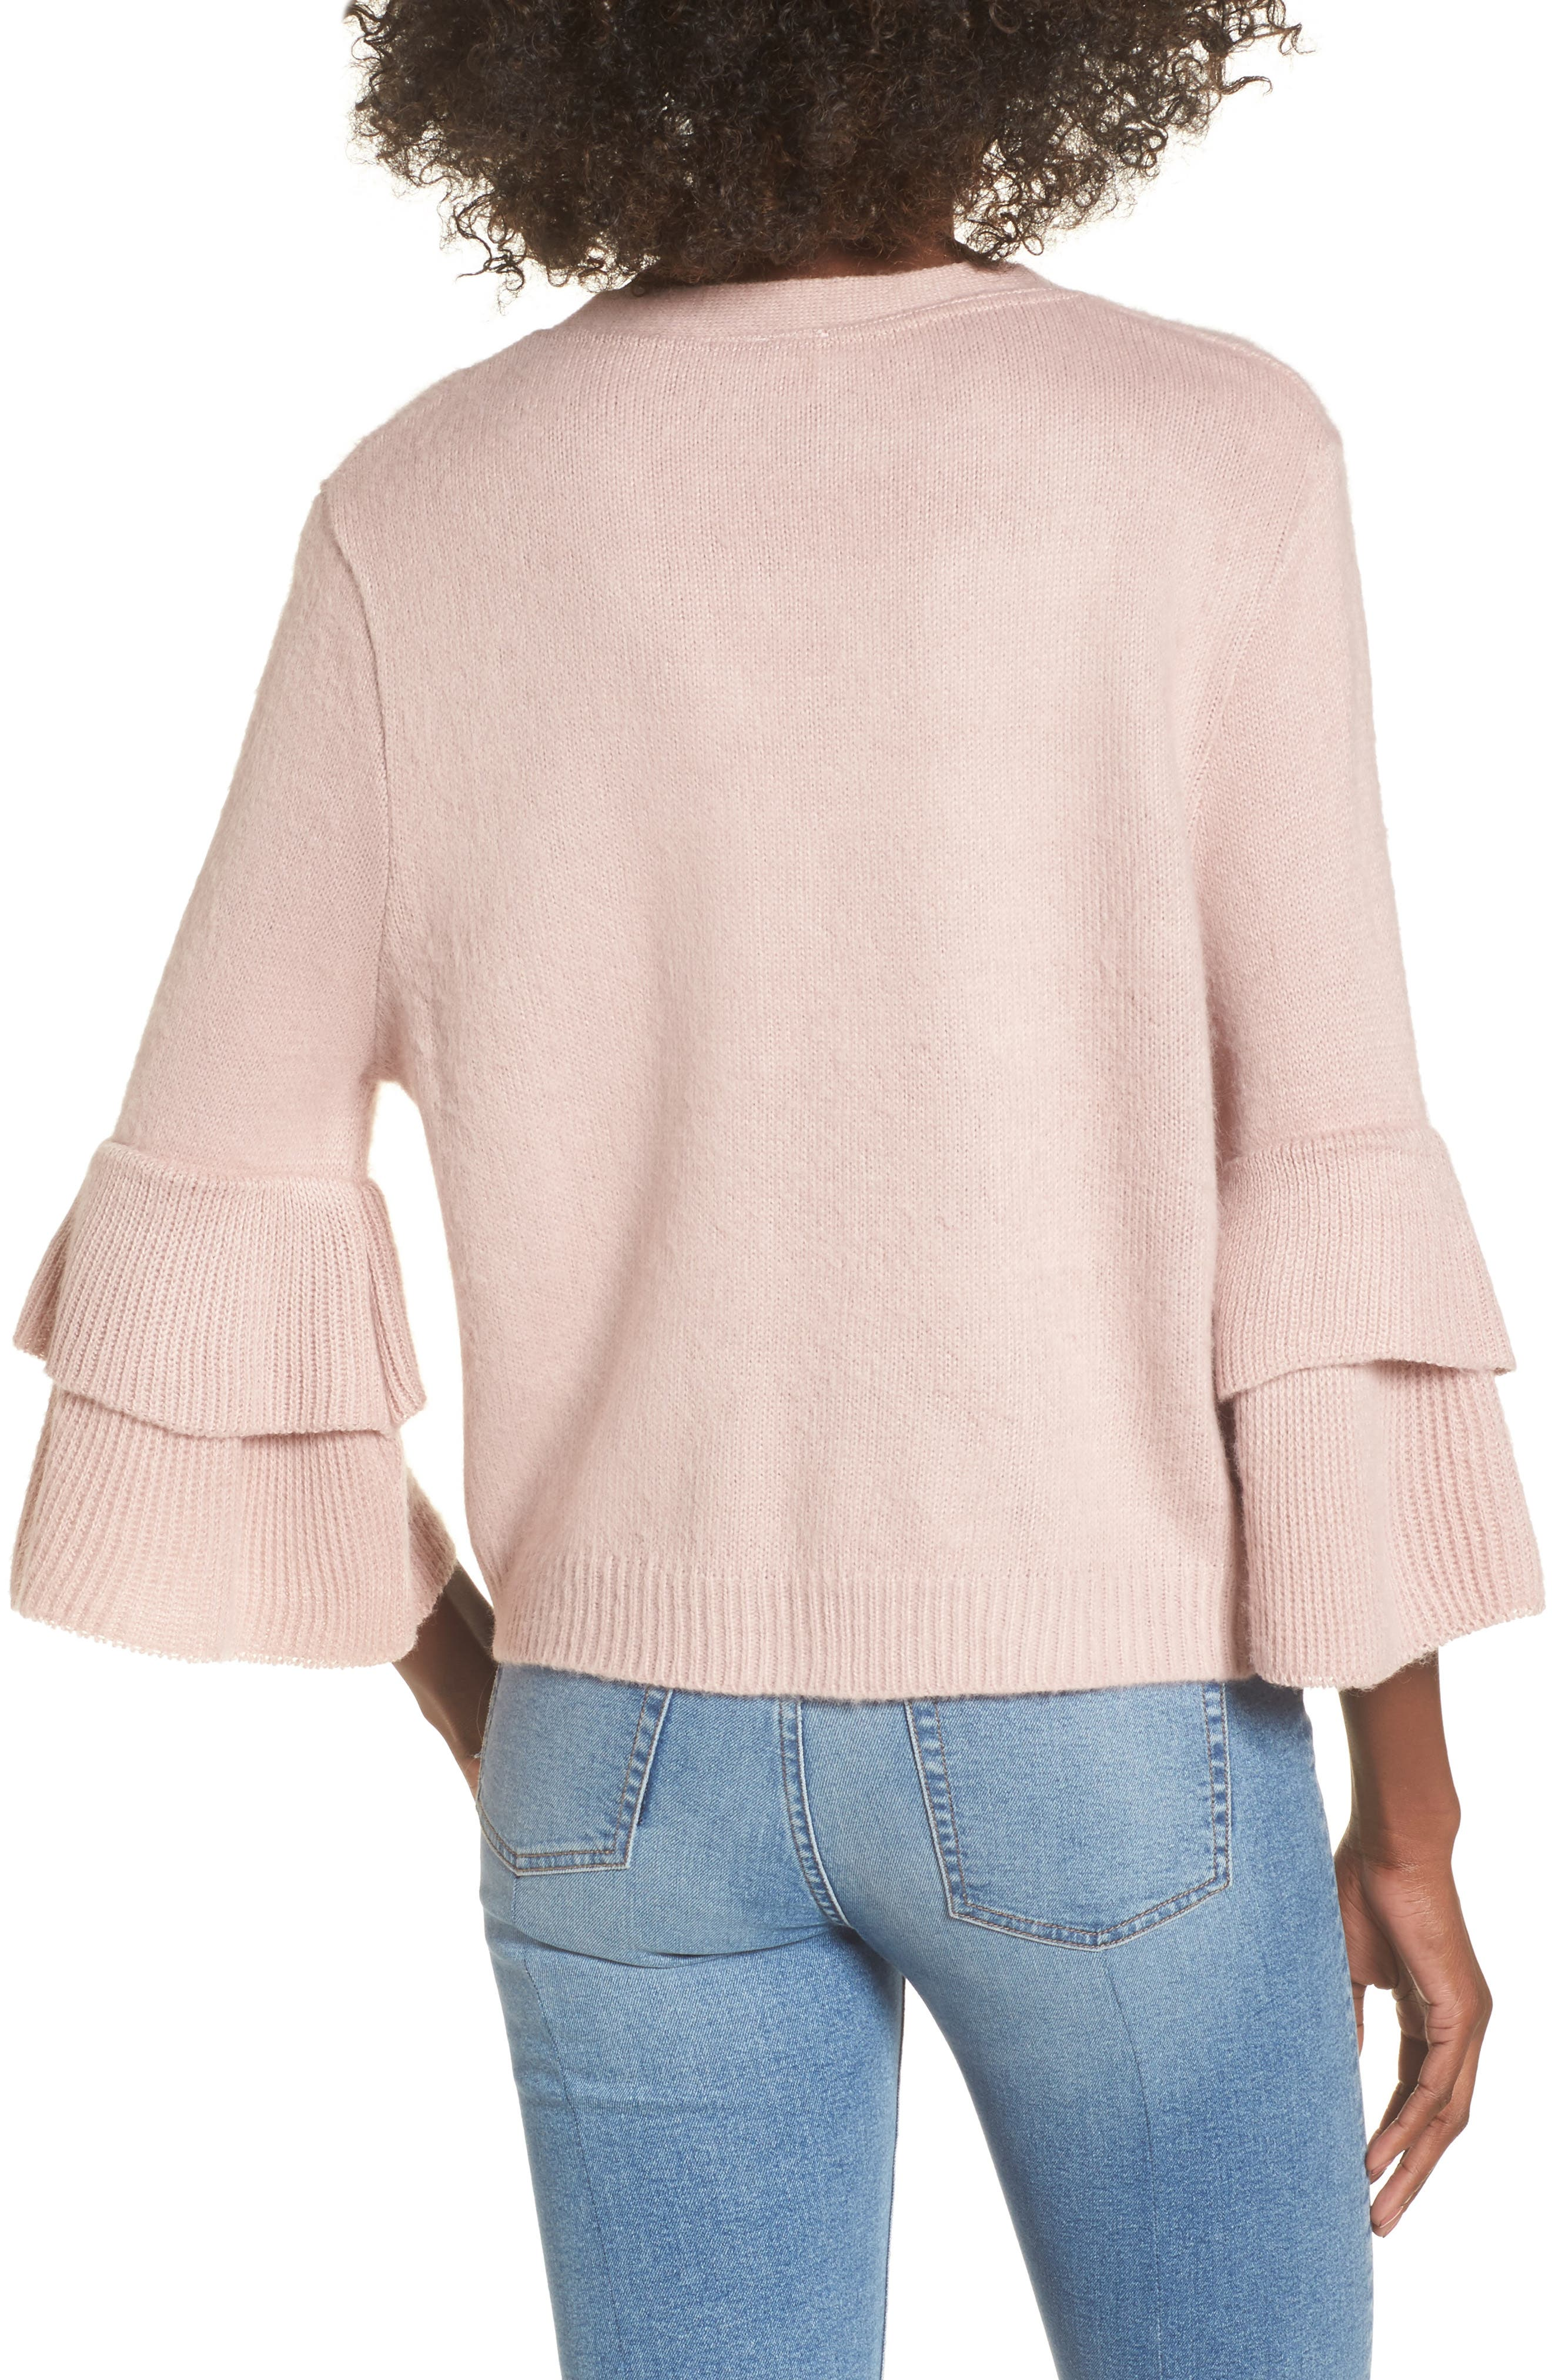 Tiered Sleeve Cardigan,                             Alternate thumbnail 3, color,                             Pink